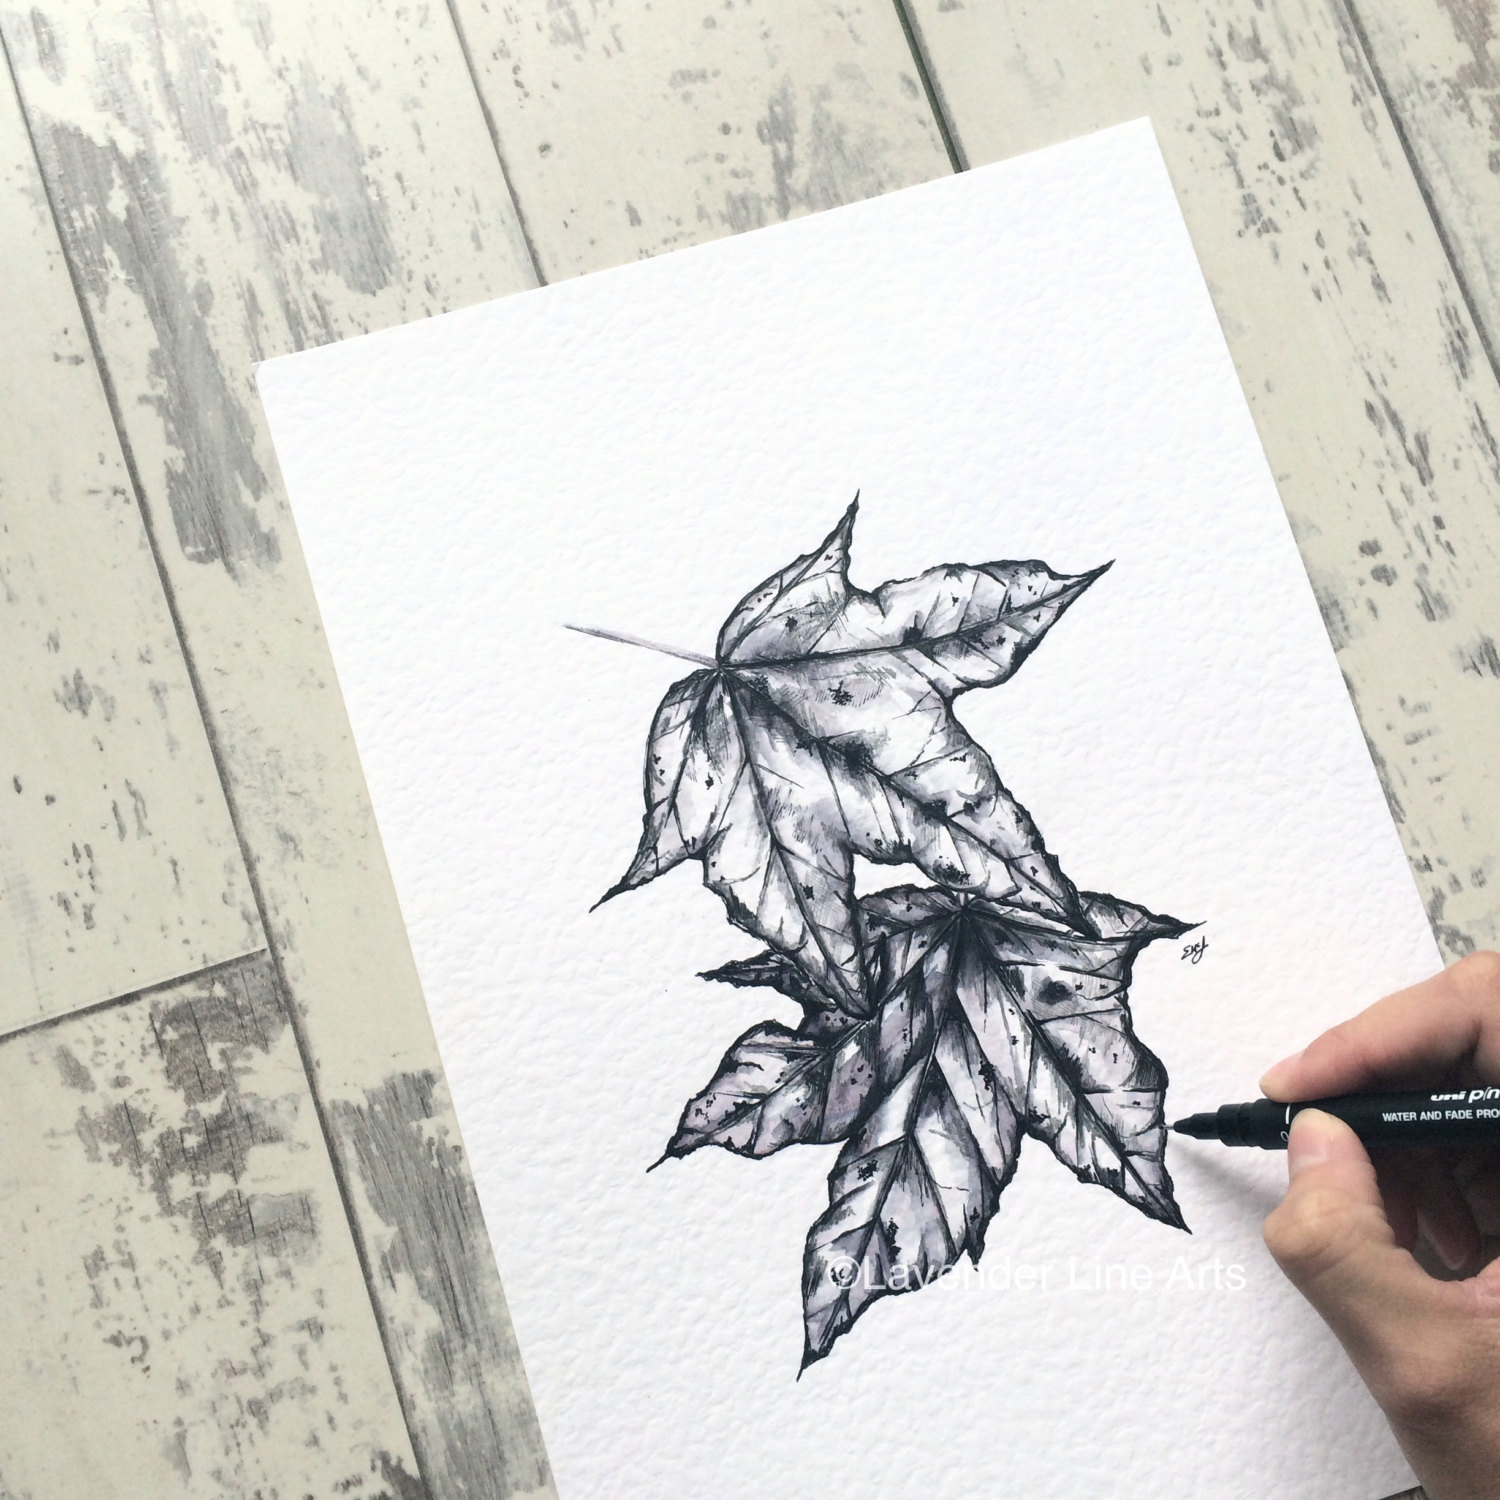 Drawn leaf Original Artwork item? Like Autumn